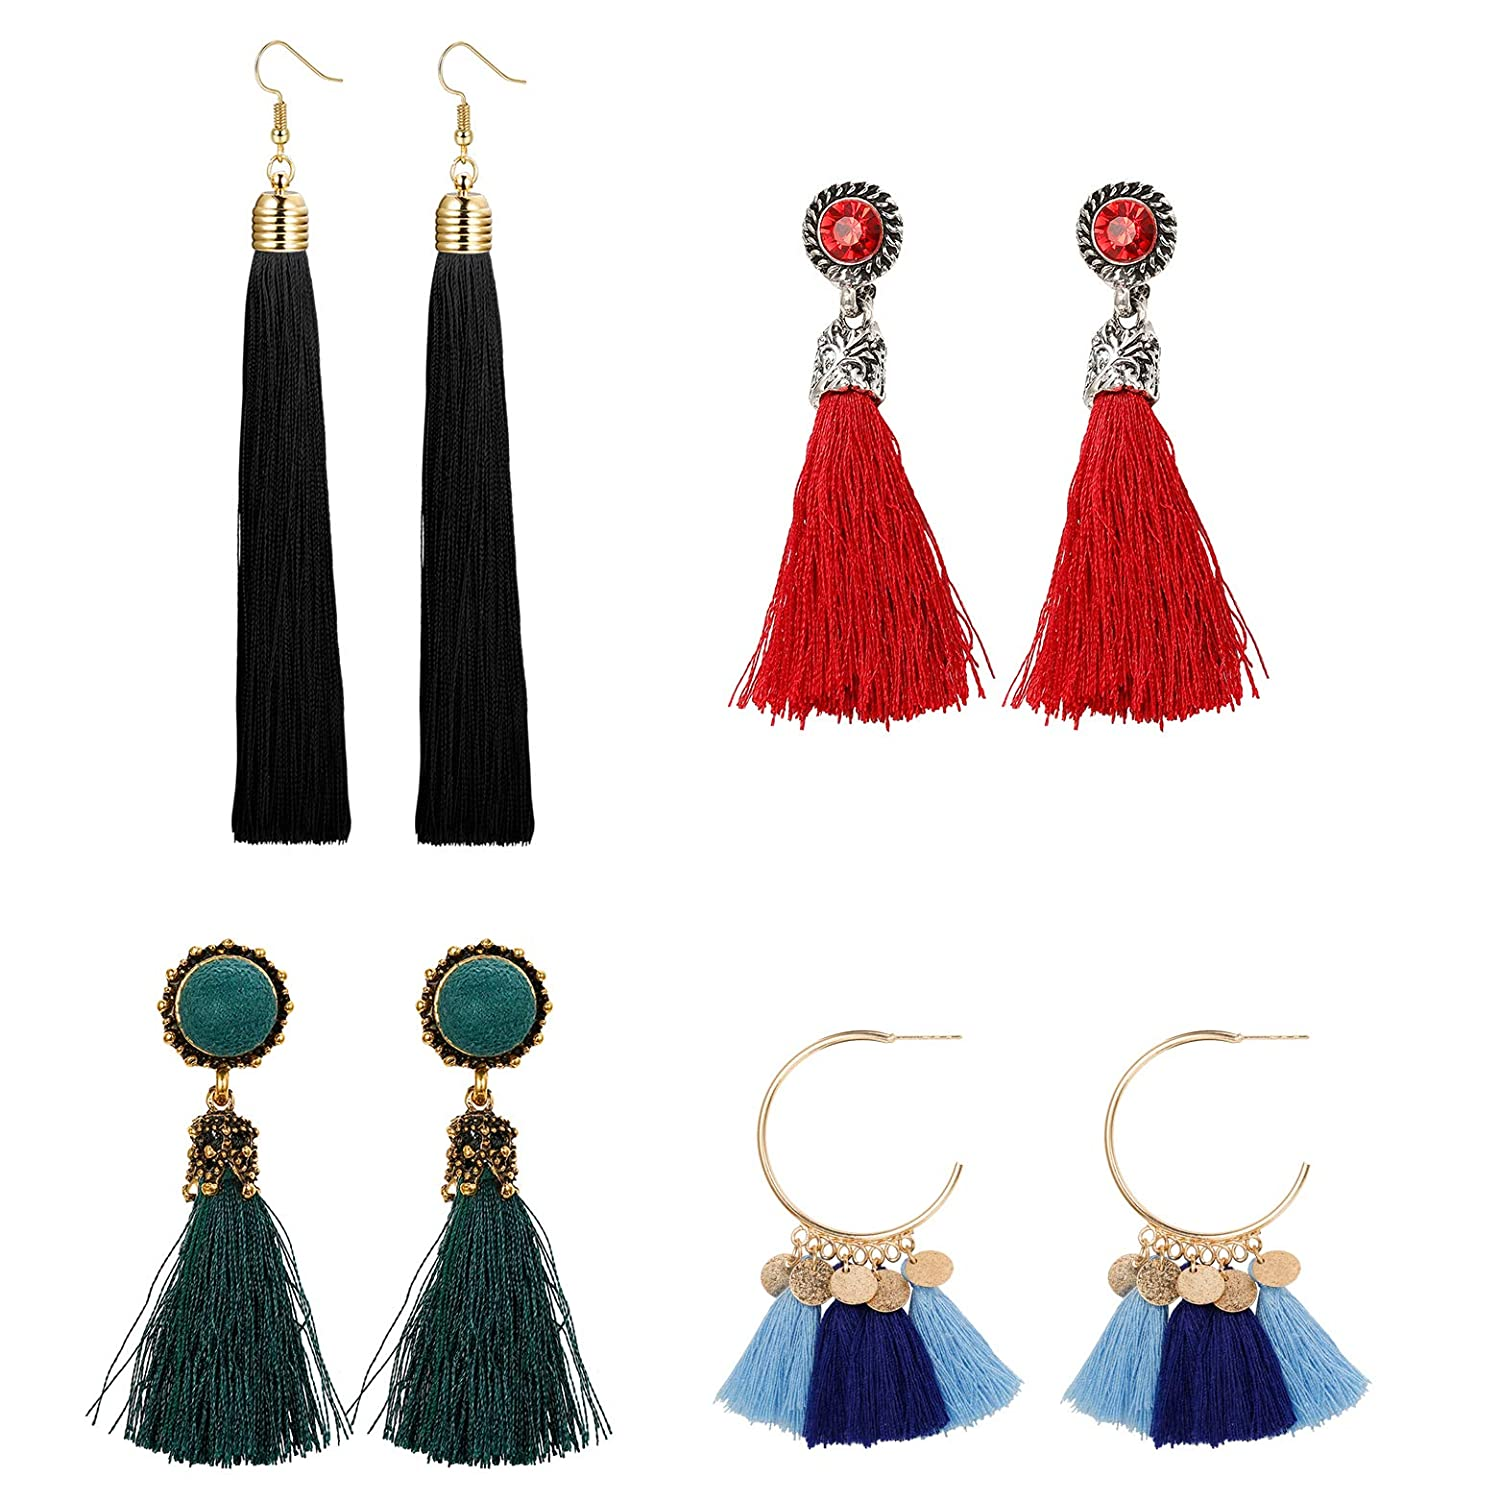 Milacolato 4-6 Pairs Long Tassel Earrings for Women Girls Dangle Boho Earrings Gold Hoop Bohemian Retro Vintage Assorted Multiple Mixed B07FFKJBWS_US